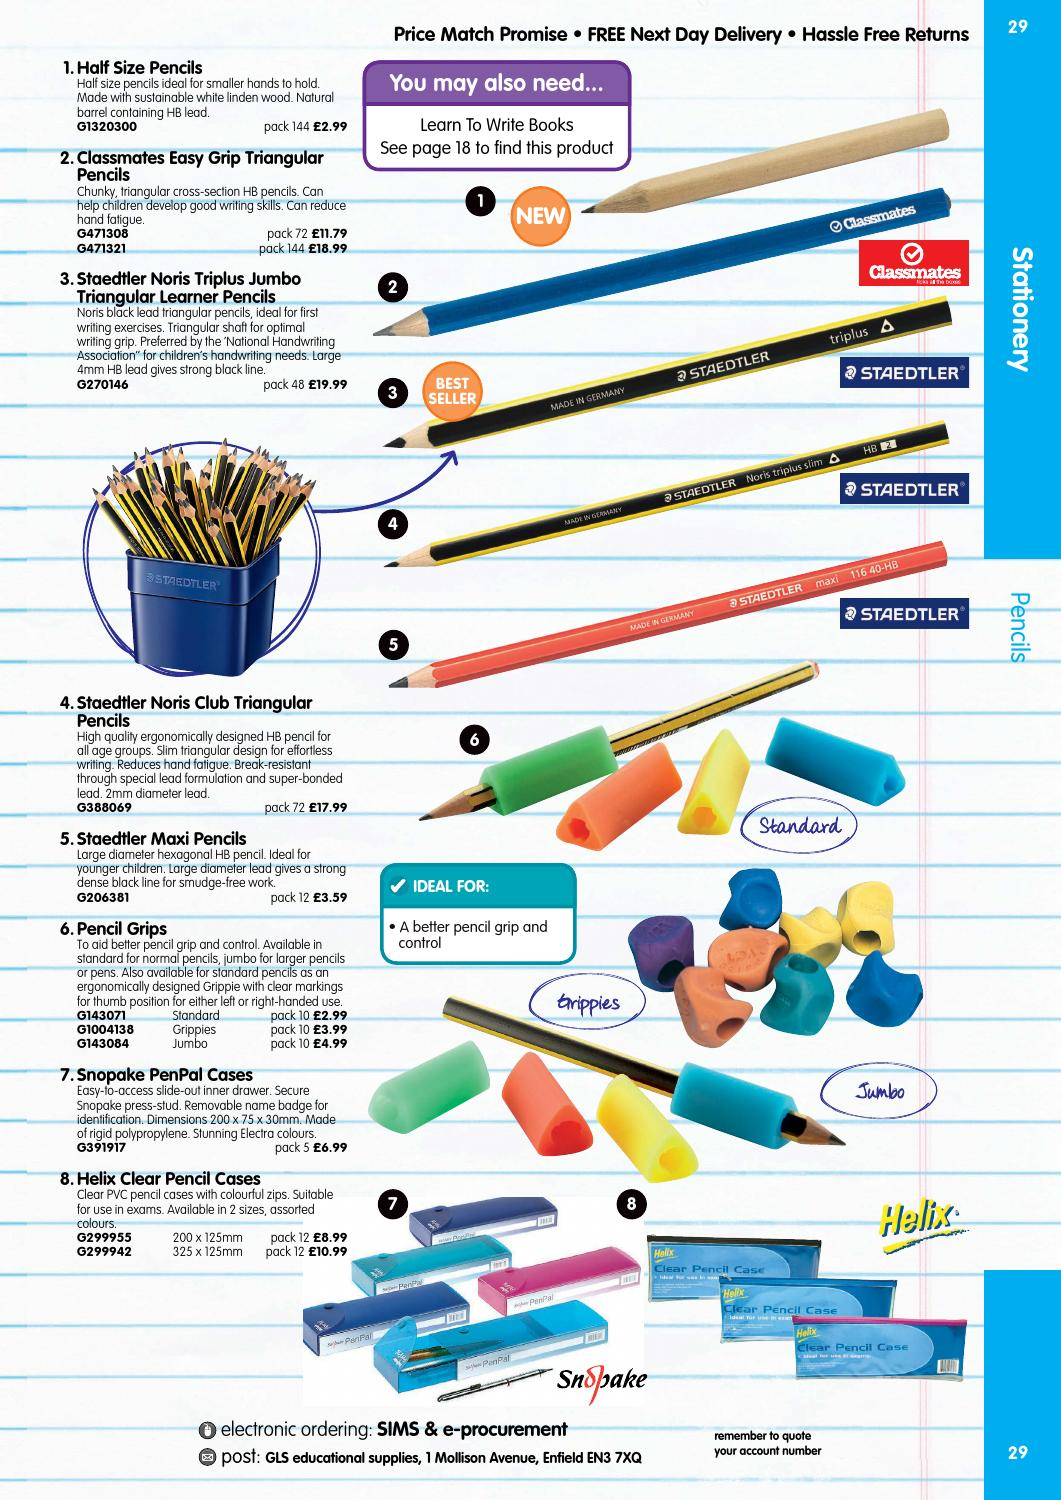 GLS Educational Supplies Catalogue 2015/16 - Stationery by Findel